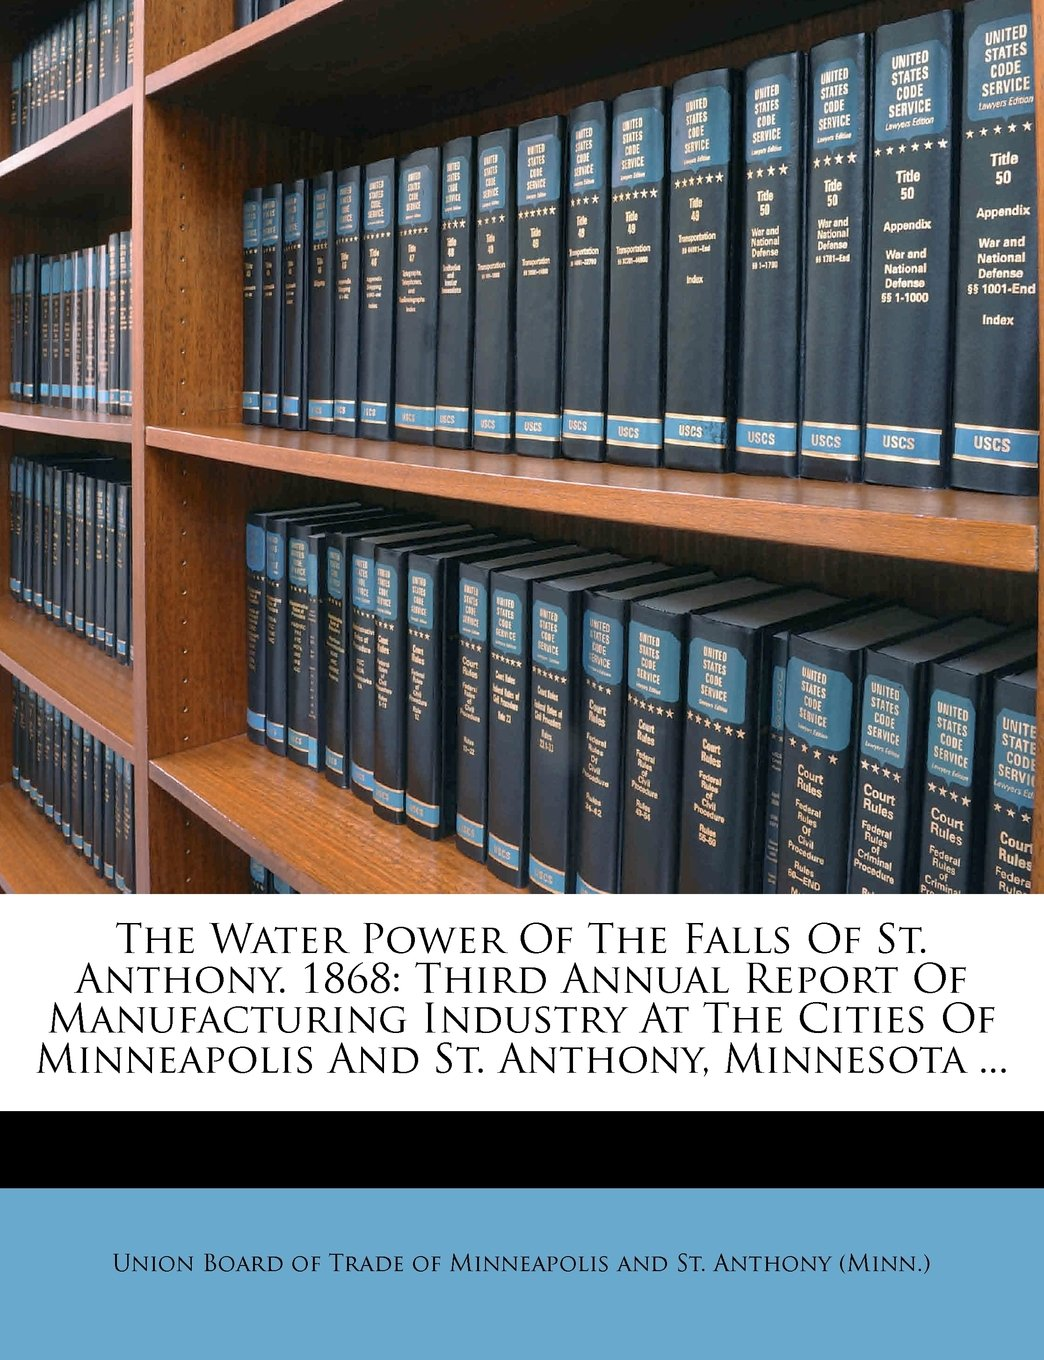 The Water Power Of The Falls Of St. Anthony. 1868: Third Annual Report Of Manufacturing Industry At The Cities Of Minneapolis And St. Anthony, Minnesota ... ebook